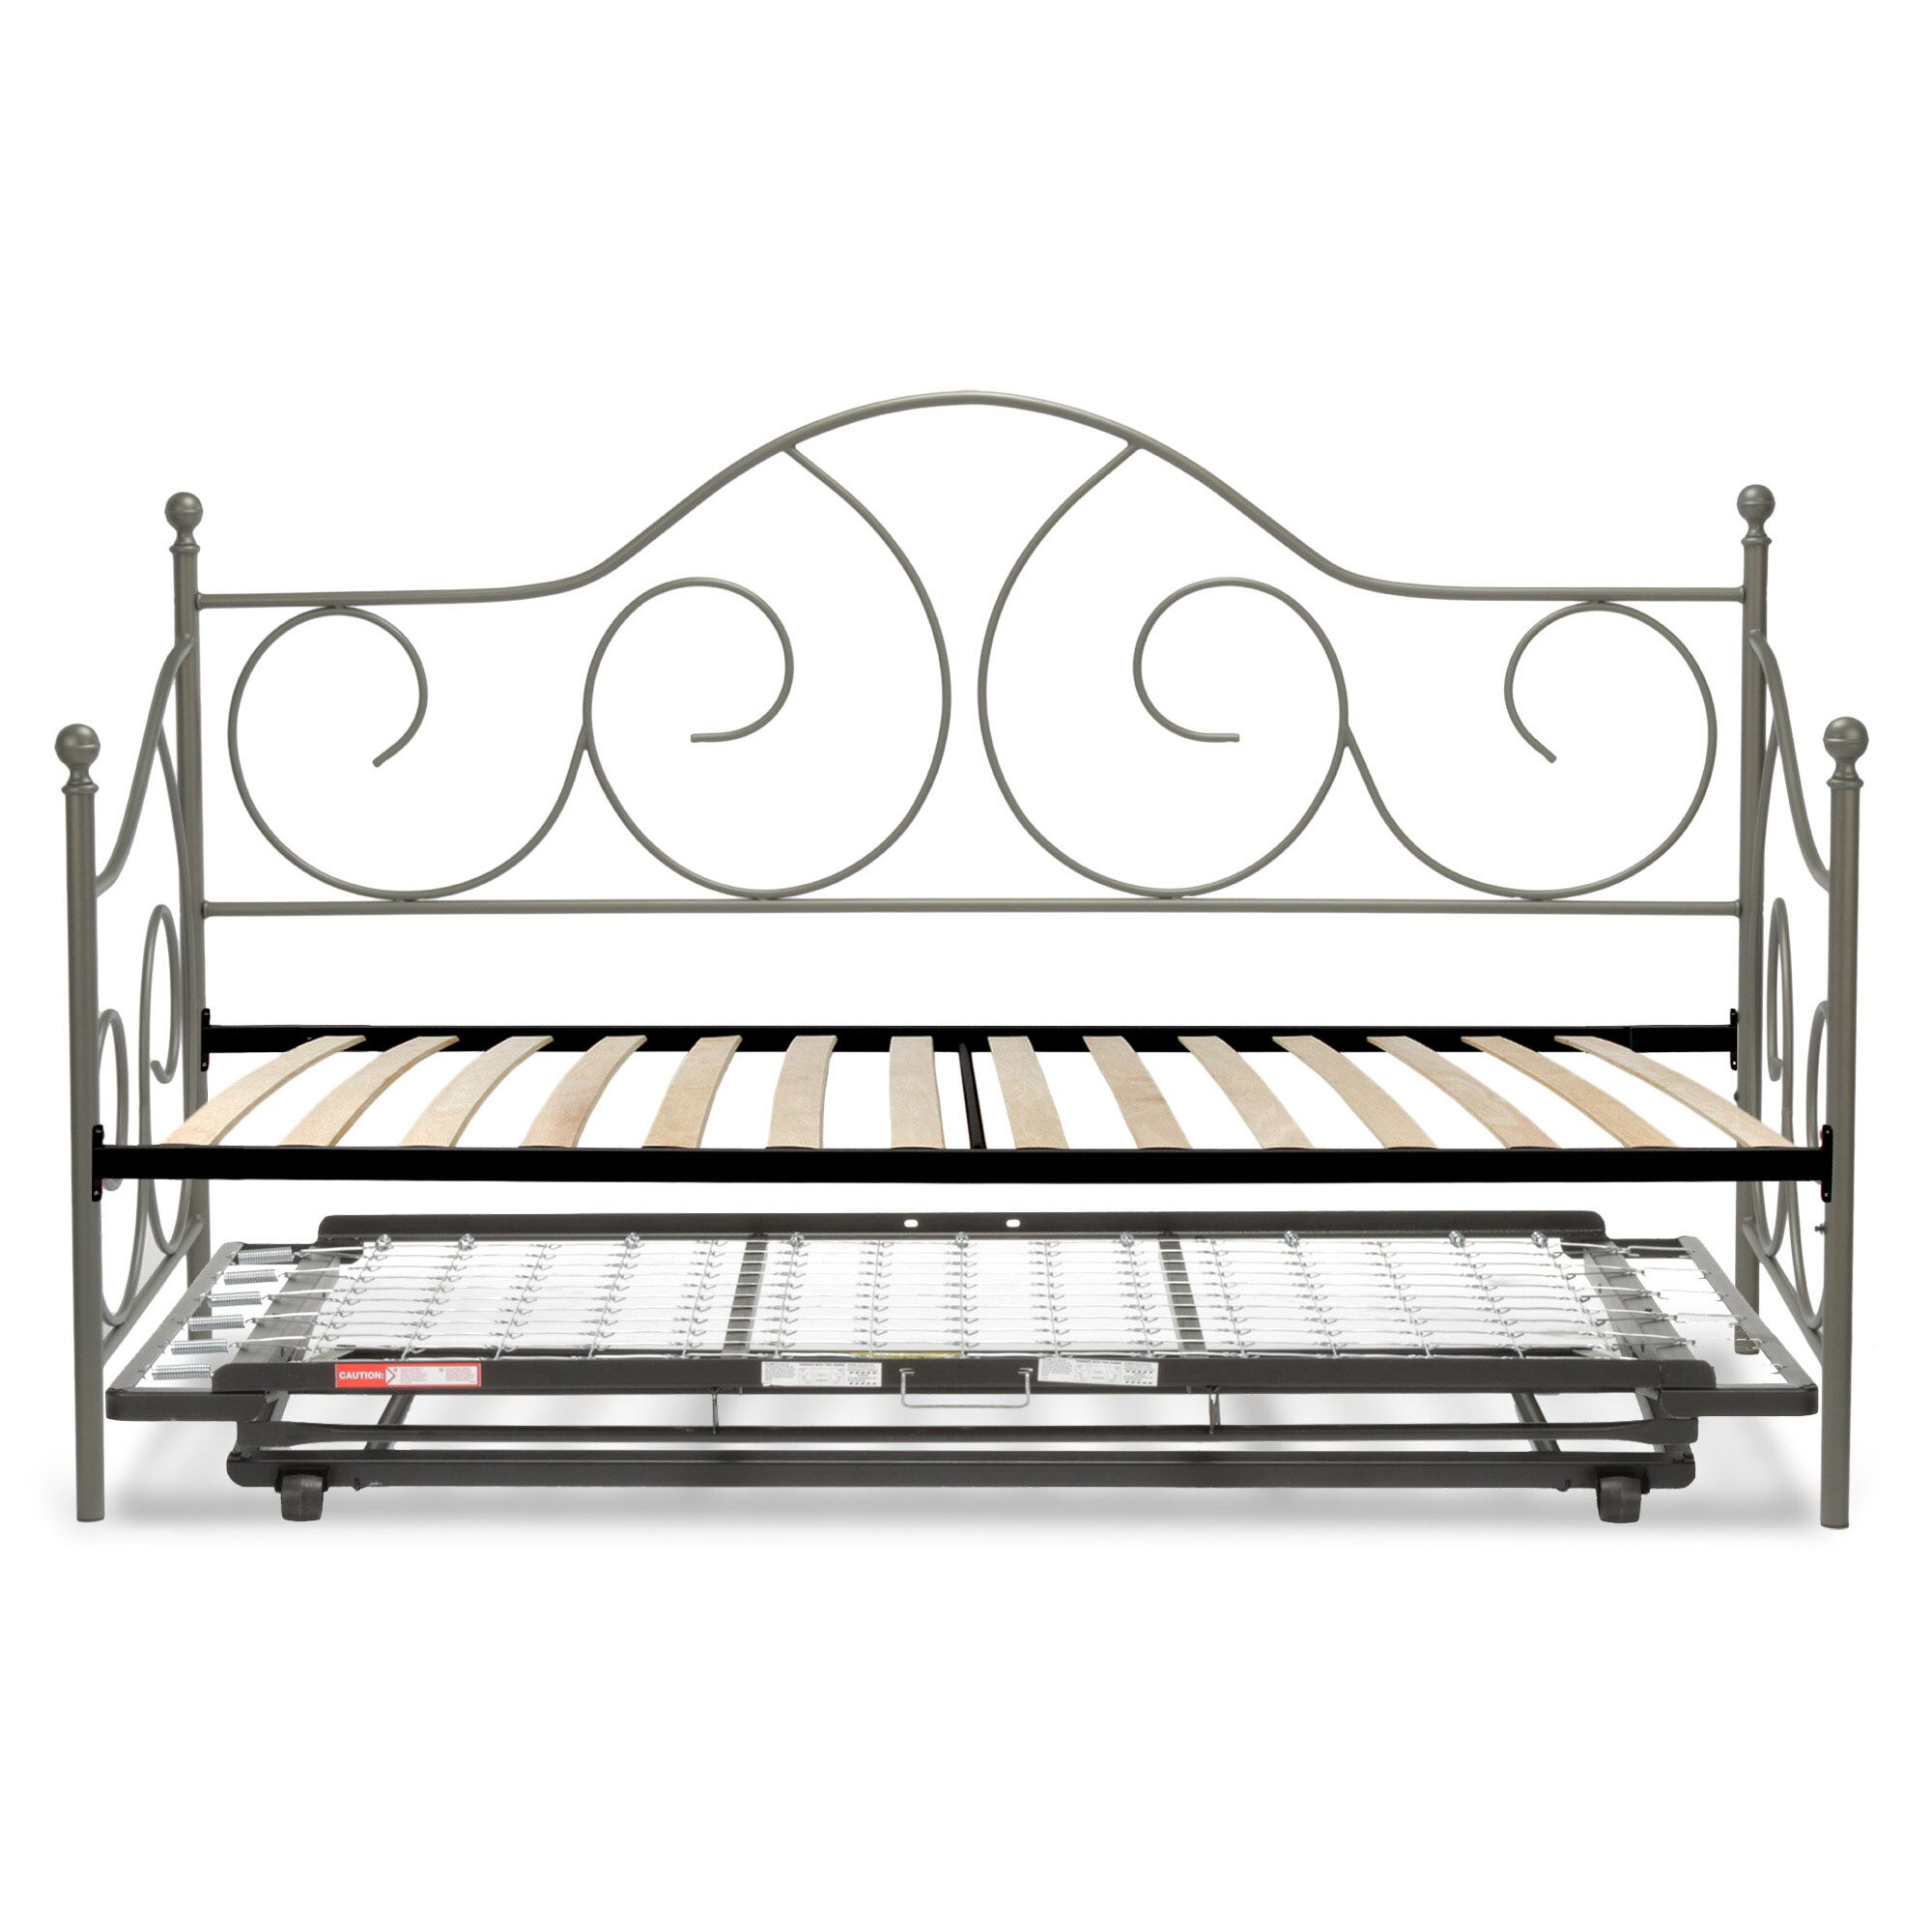 Steelton Metal Daybed Finish: Matte Gray Flint, Accessories: Trundle Included